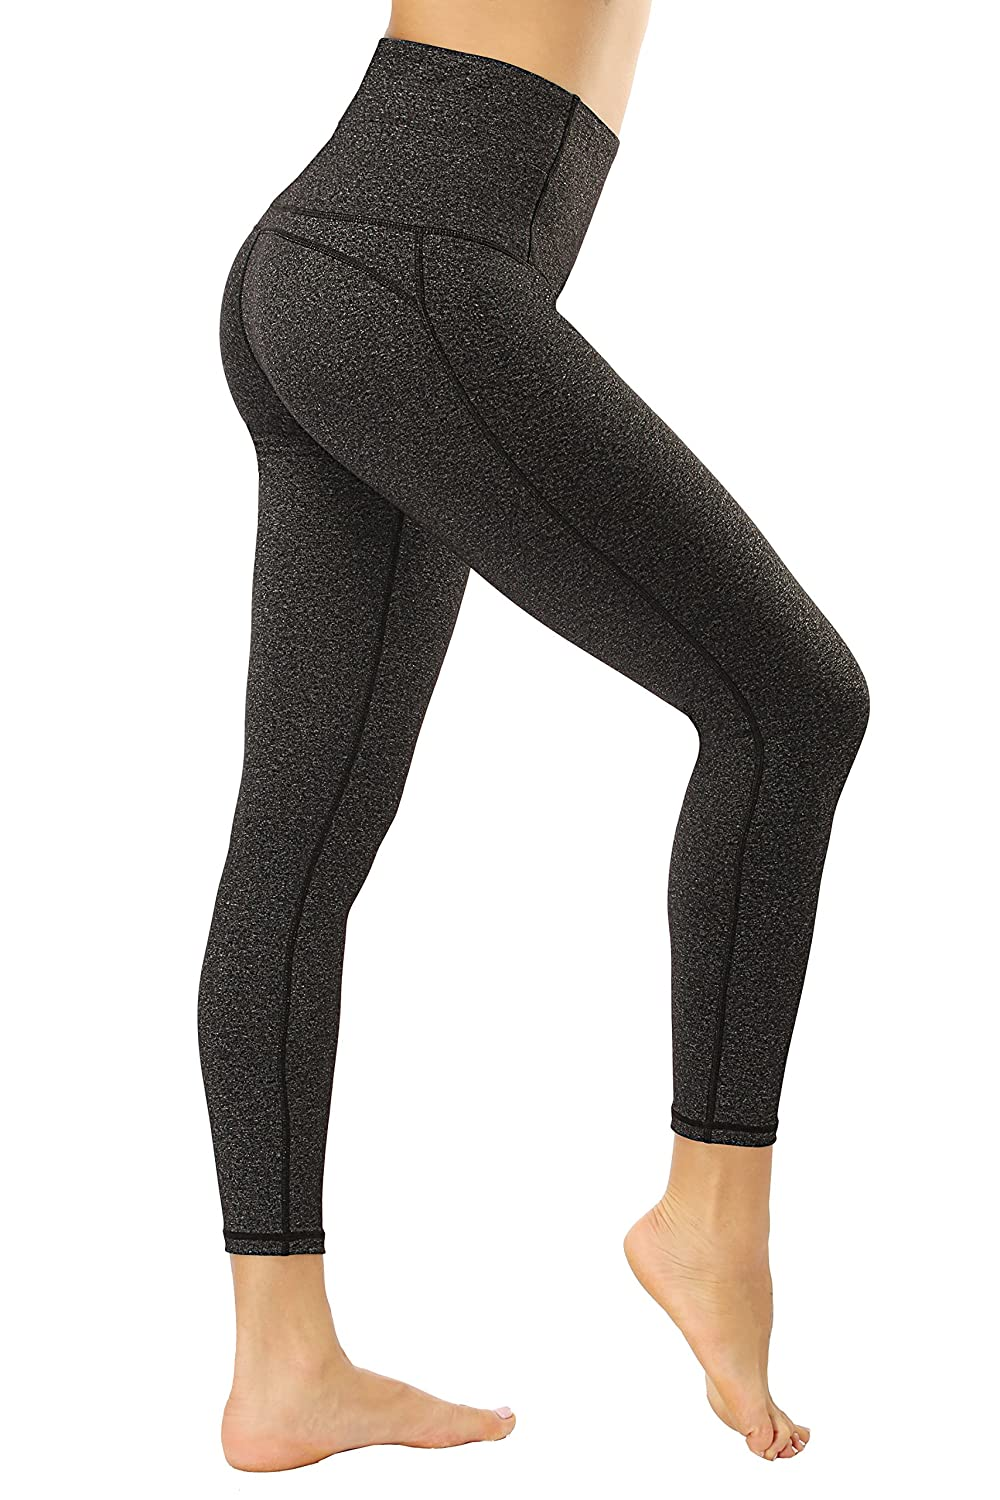 Grey Lopie Yoga Pants for Women high Waist with Pockets Stretch Tummy Control Non SeeThrough Workout Leggings